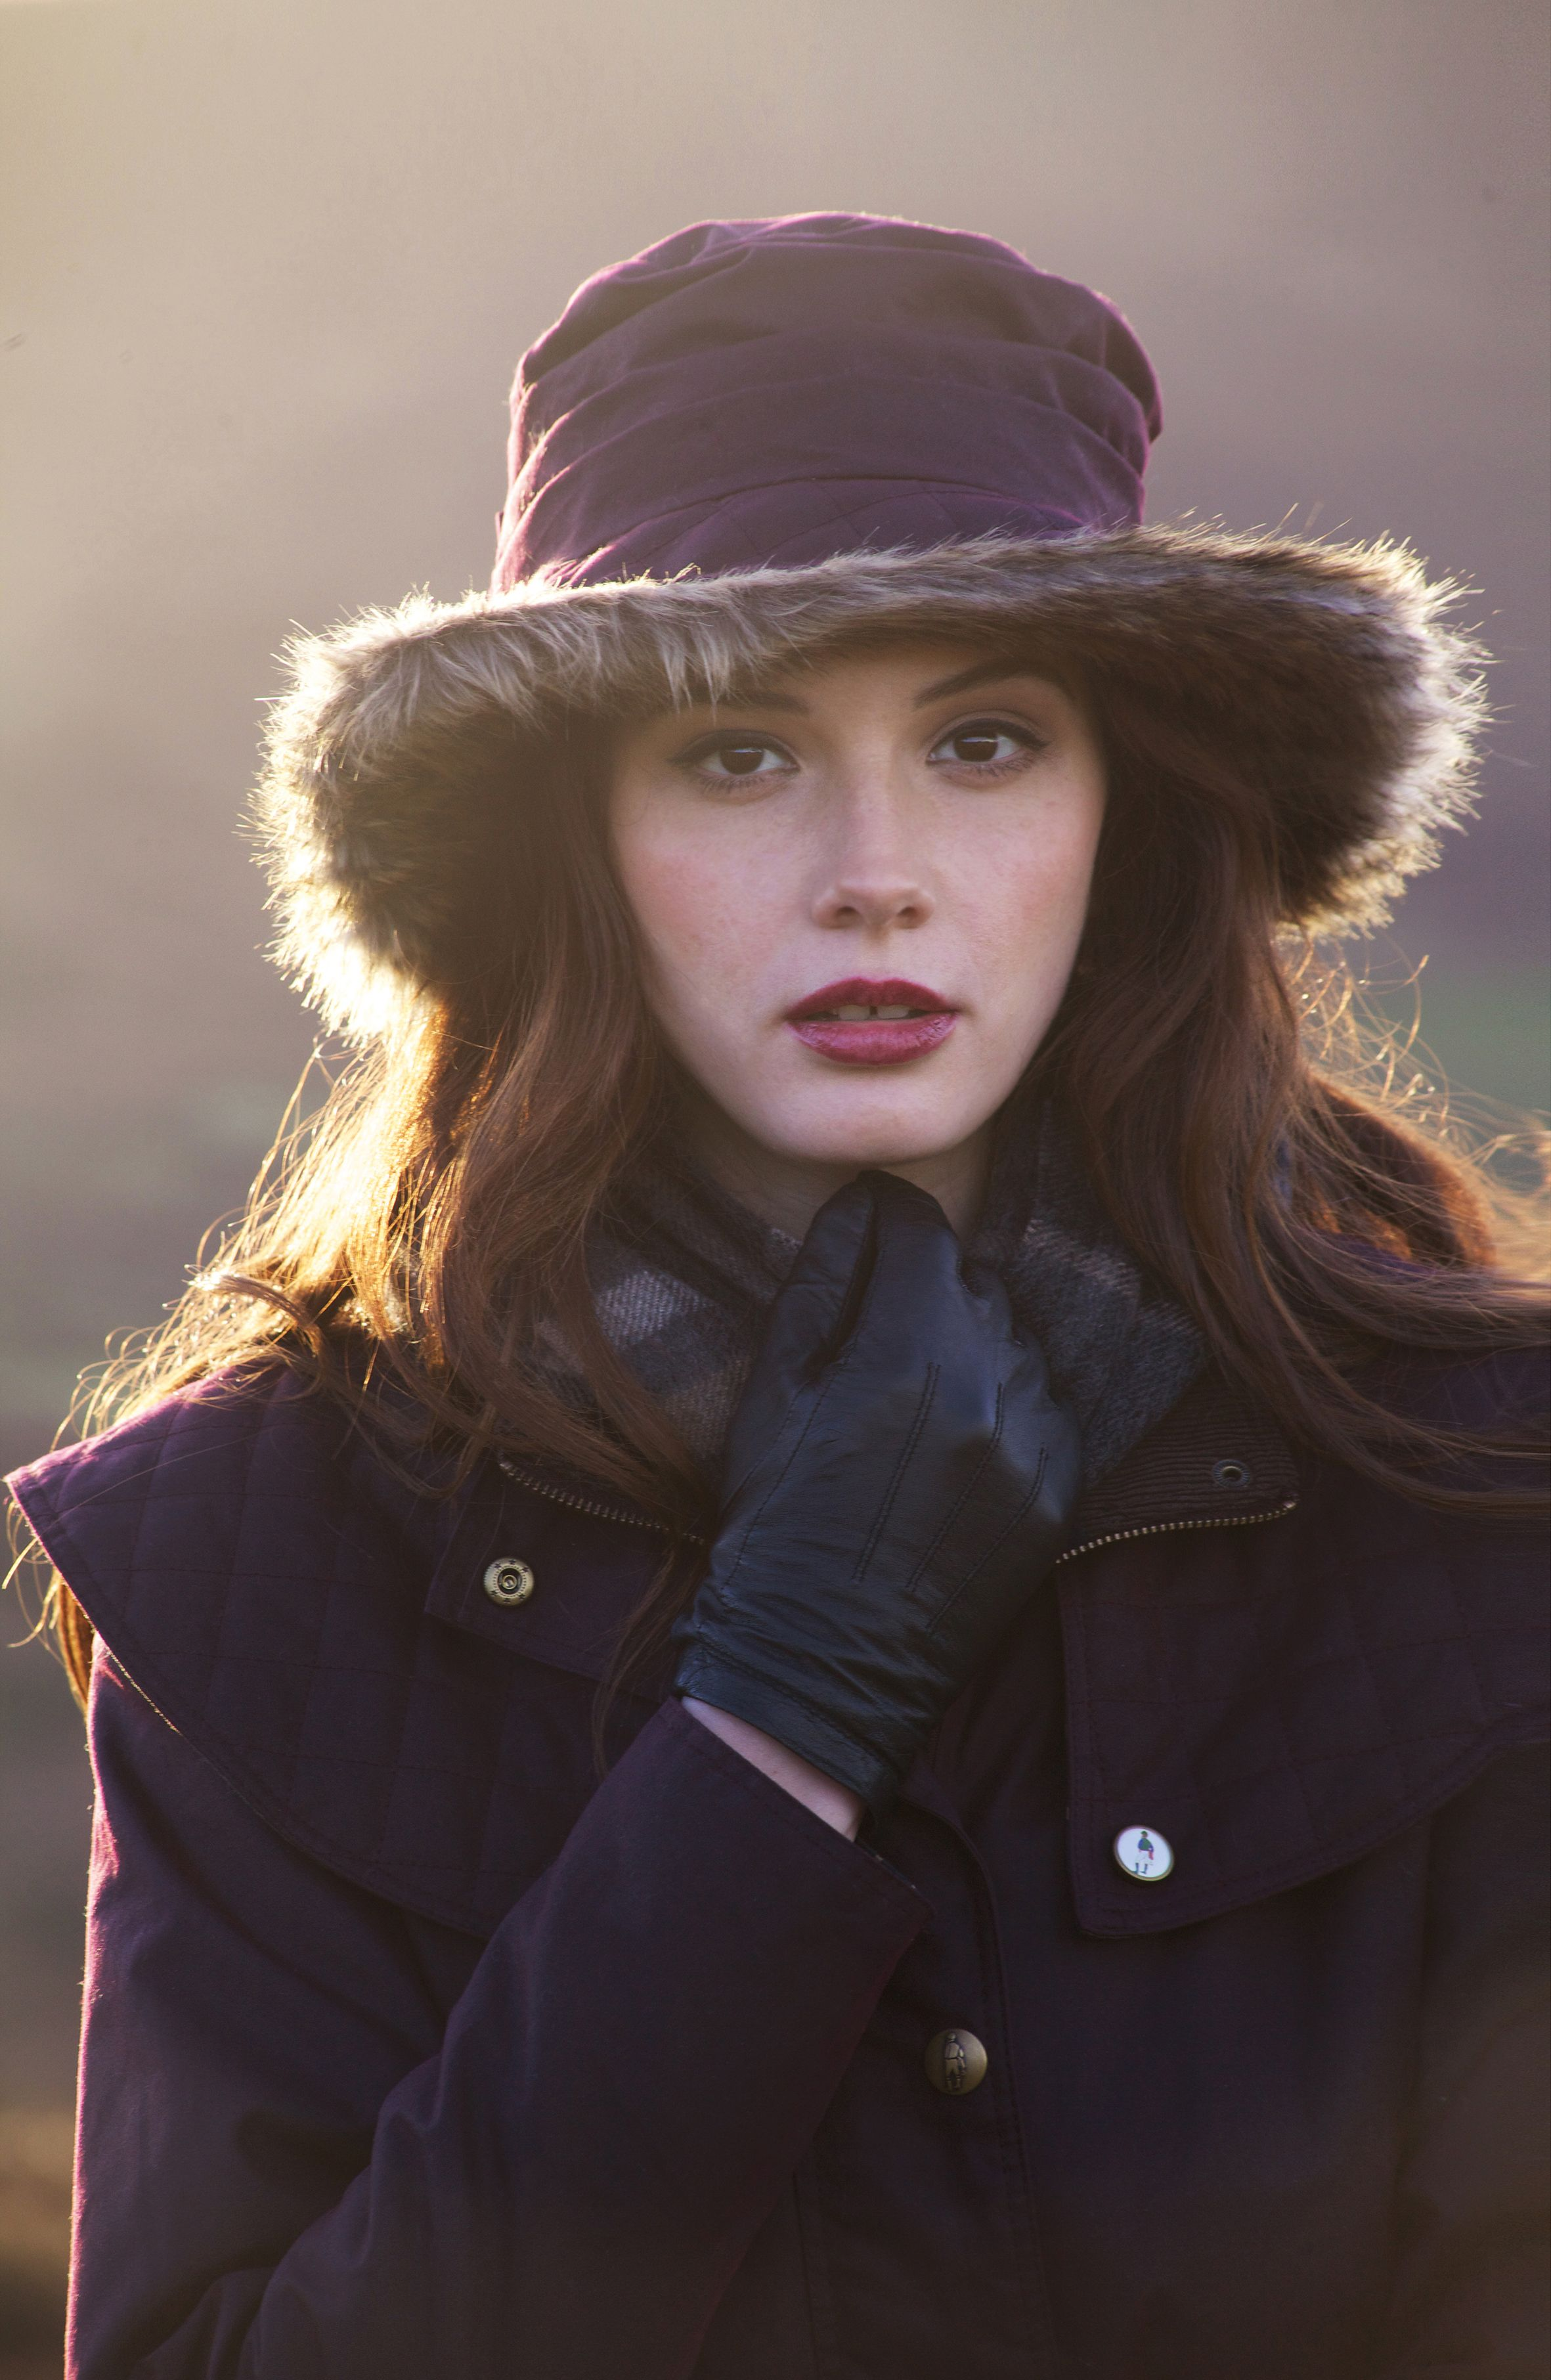 6cf04f39b Jack Murphy's RUFFOUS Waxed Hat with faux fur brim is the perfect ...